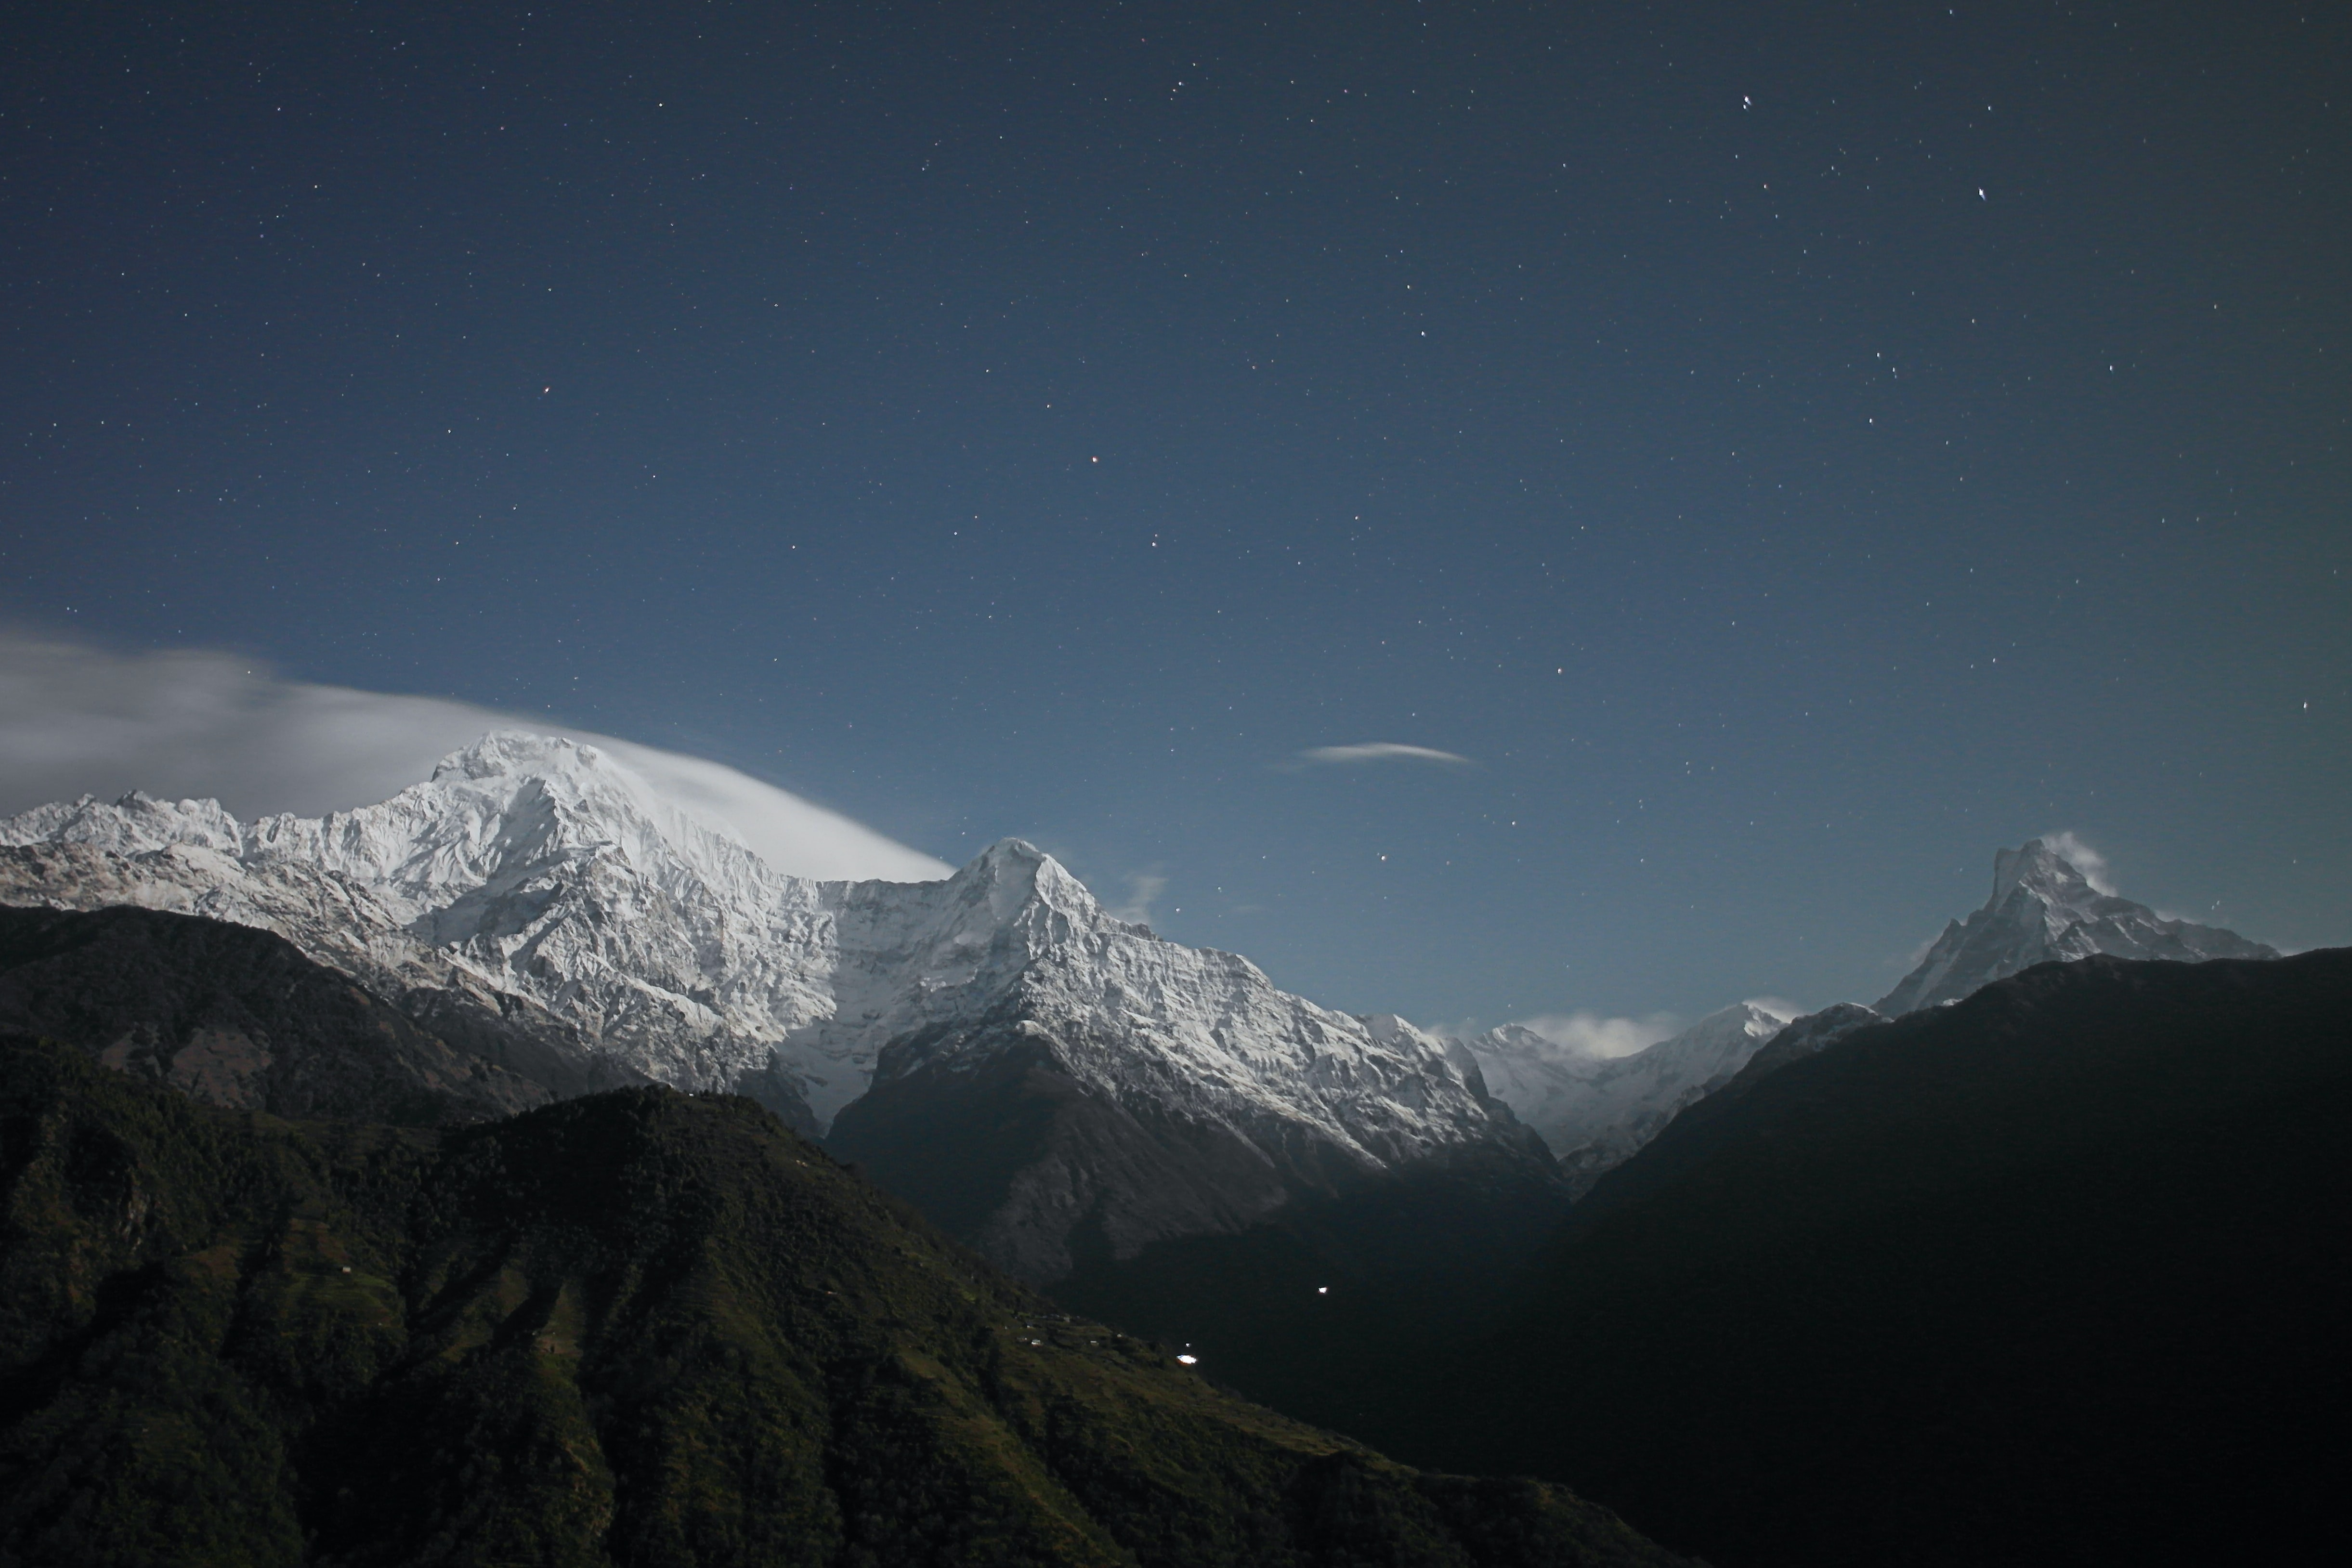 Tall snow-covered mountain peaks under a starry sky